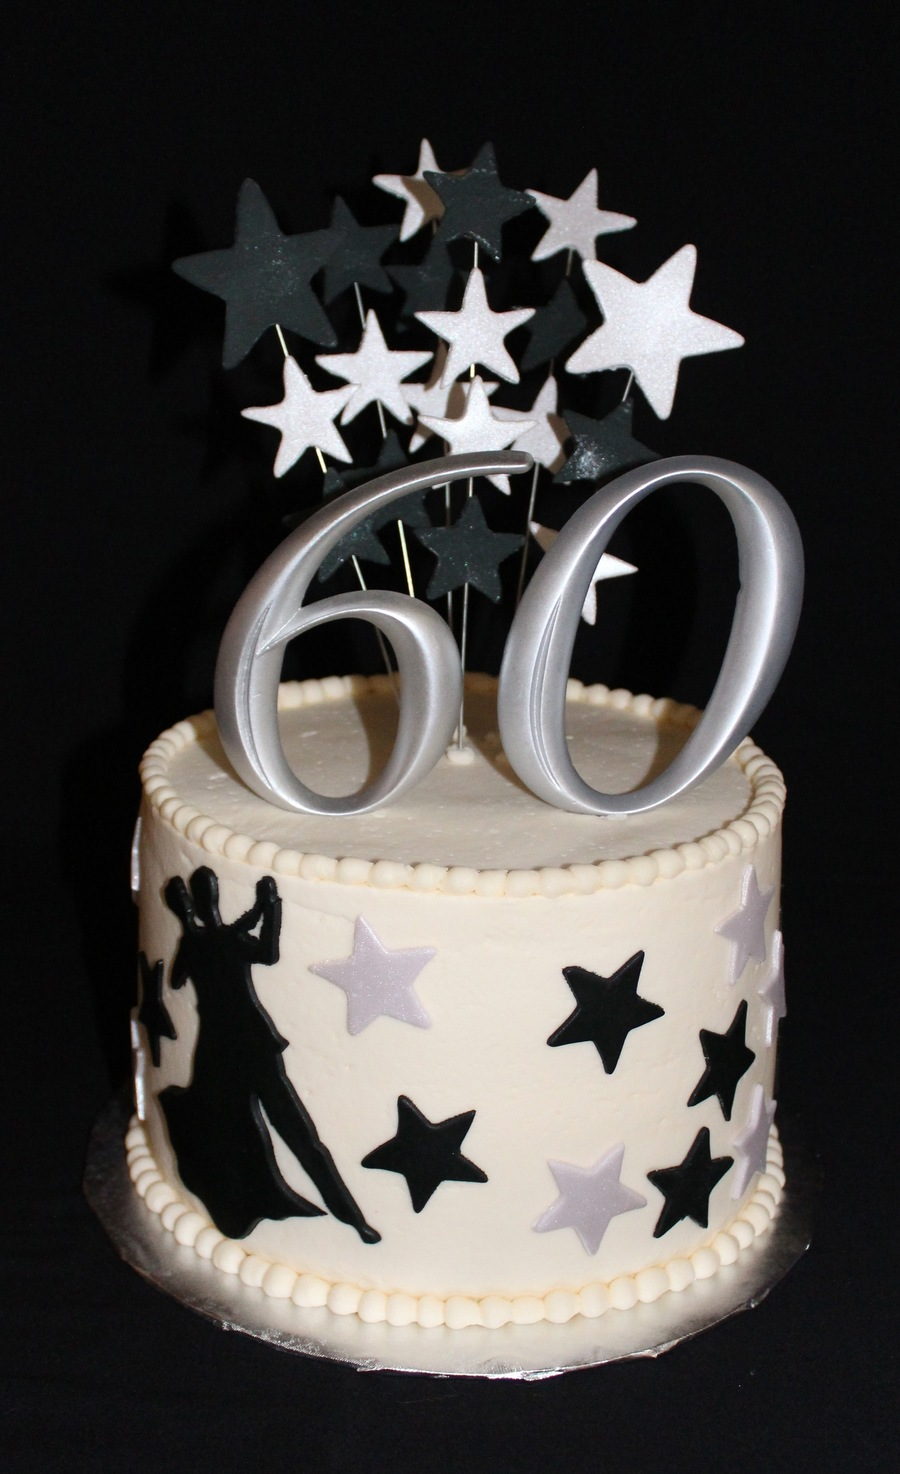 60Th Birthday Cake Lemon Cake With Lemon Curd Filling And Lemon Buttercream Icing Fondant Silhouette And Stars on Cake Central